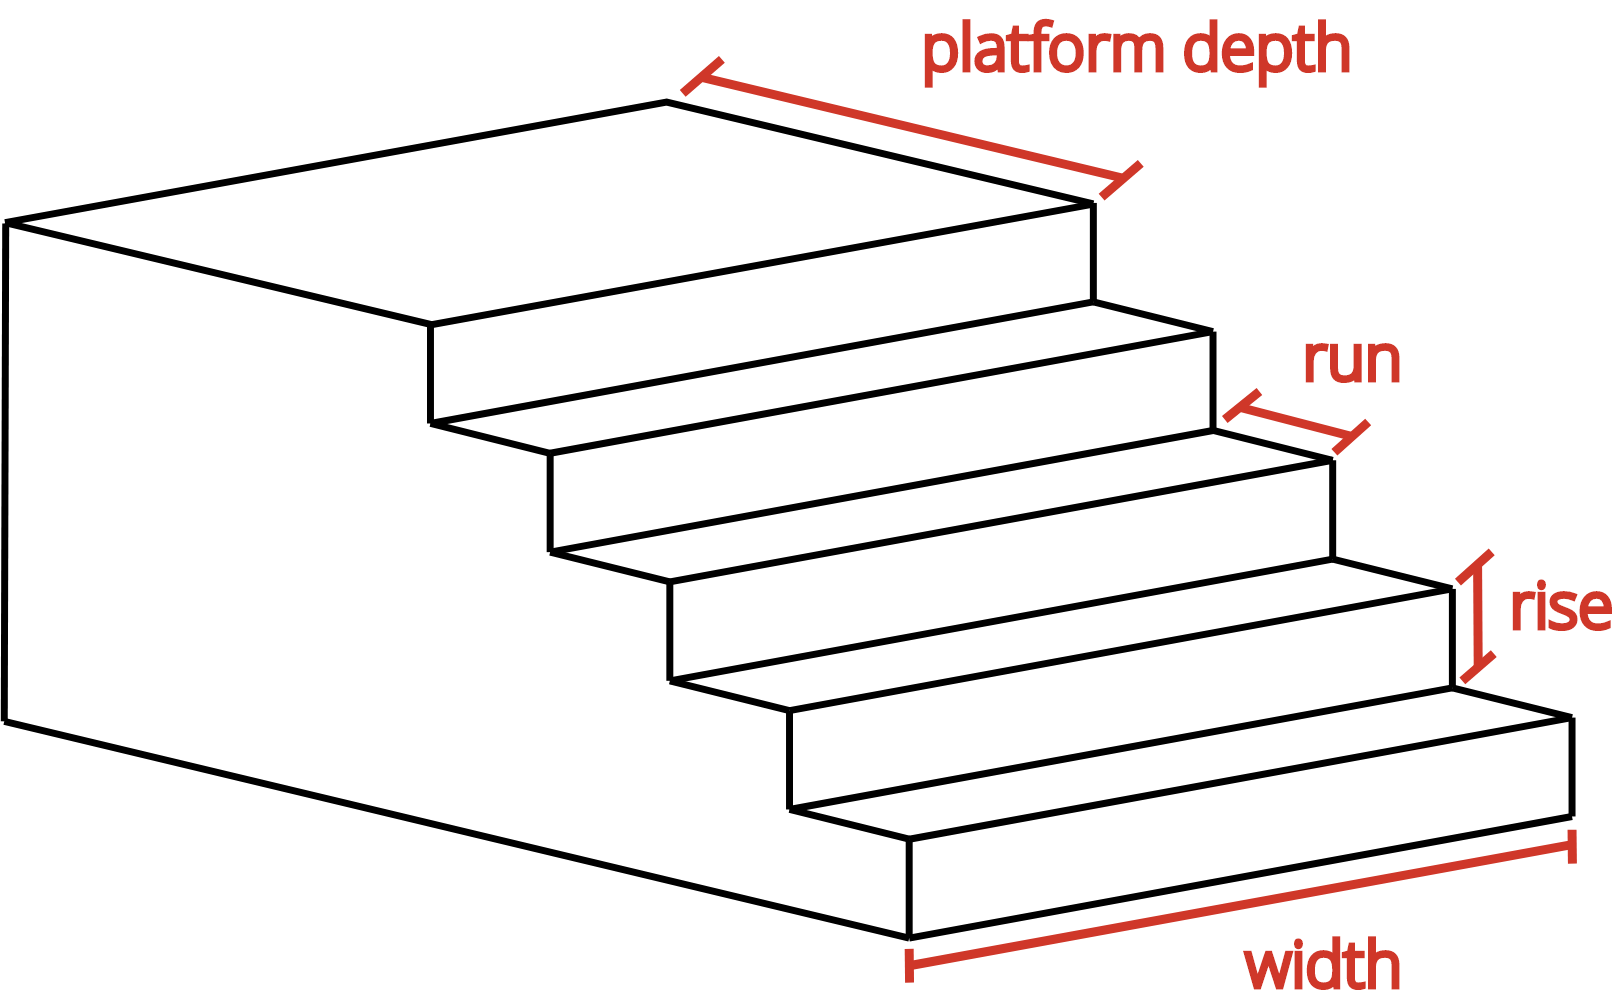 drawing showing concrete steps rise, run, platform depth, and width